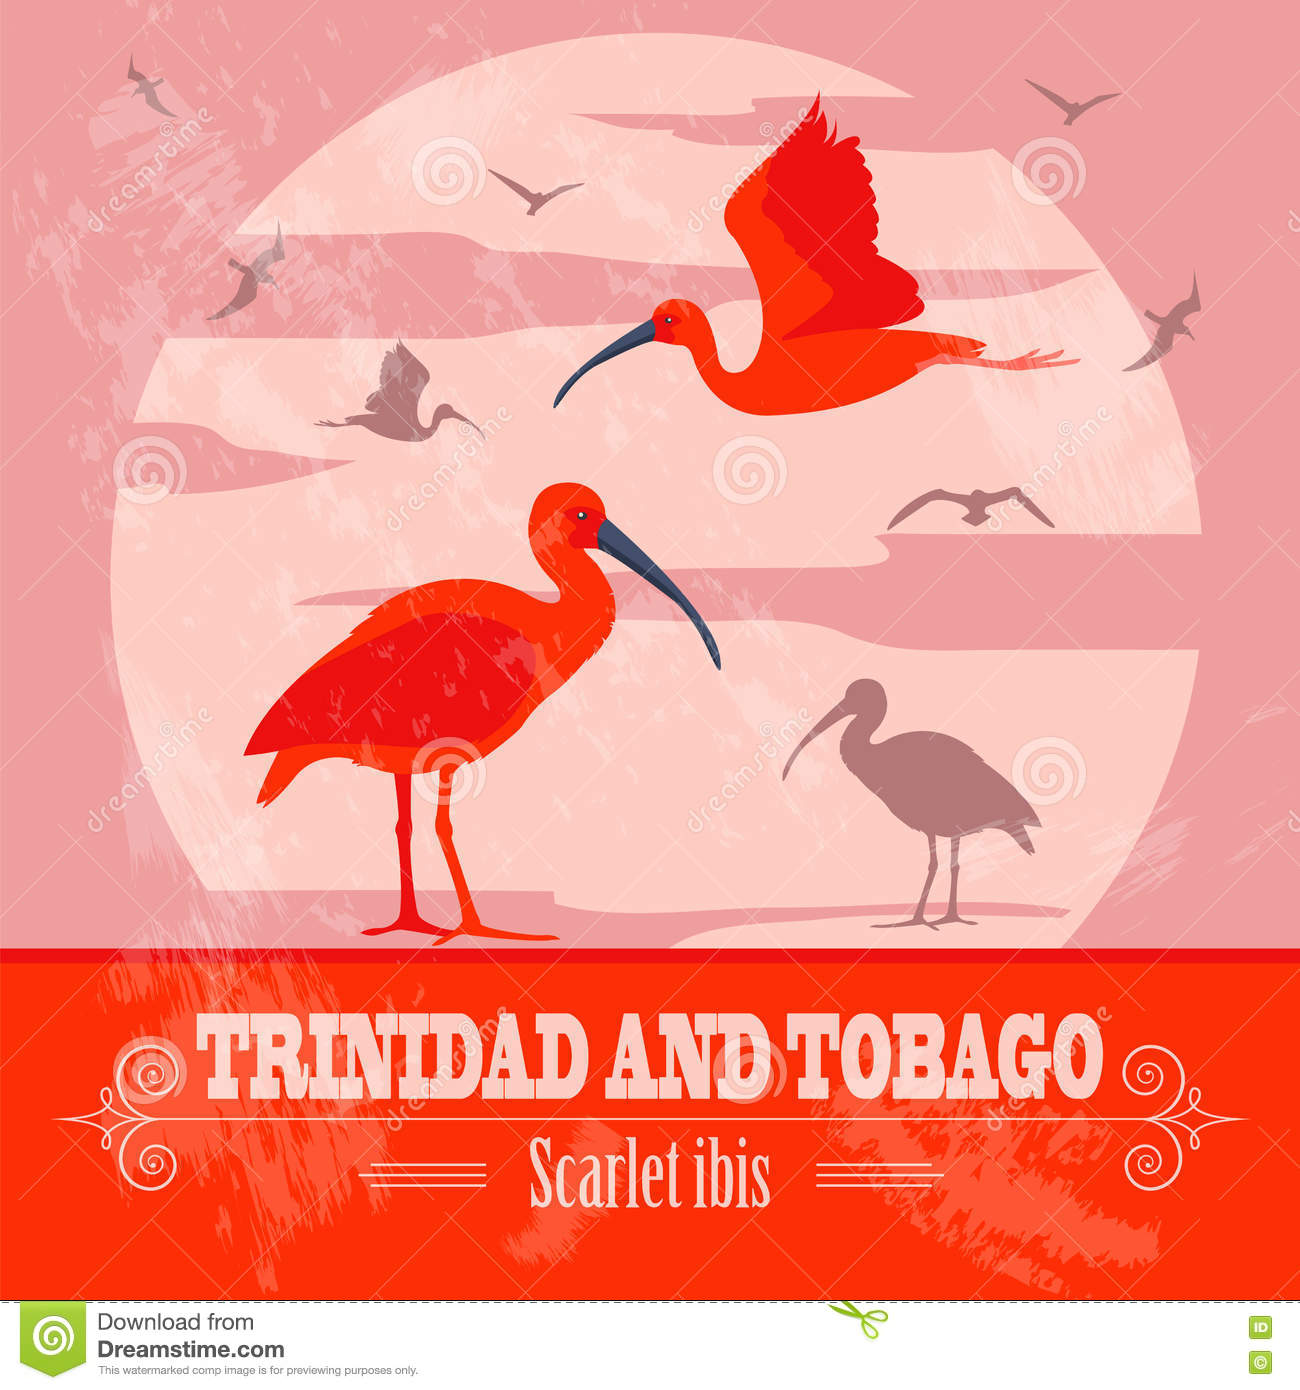 Trinidad And Tobago National Symbols Scarlet Red Ibis Retro